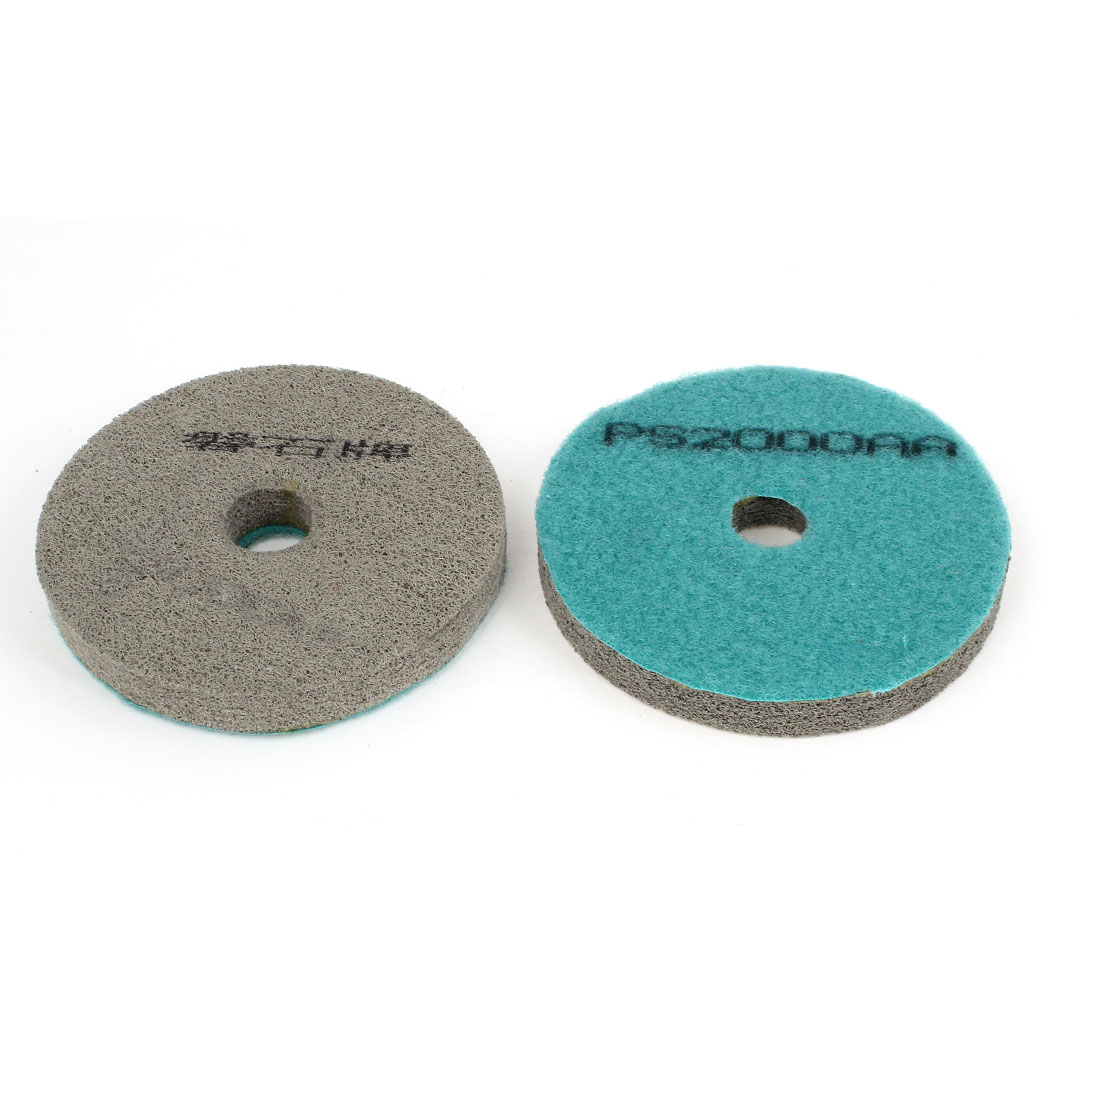 2 Pcs Marble Tile Concrete Stone Dry Diamond Polishing Pad Disk 2000 Grit